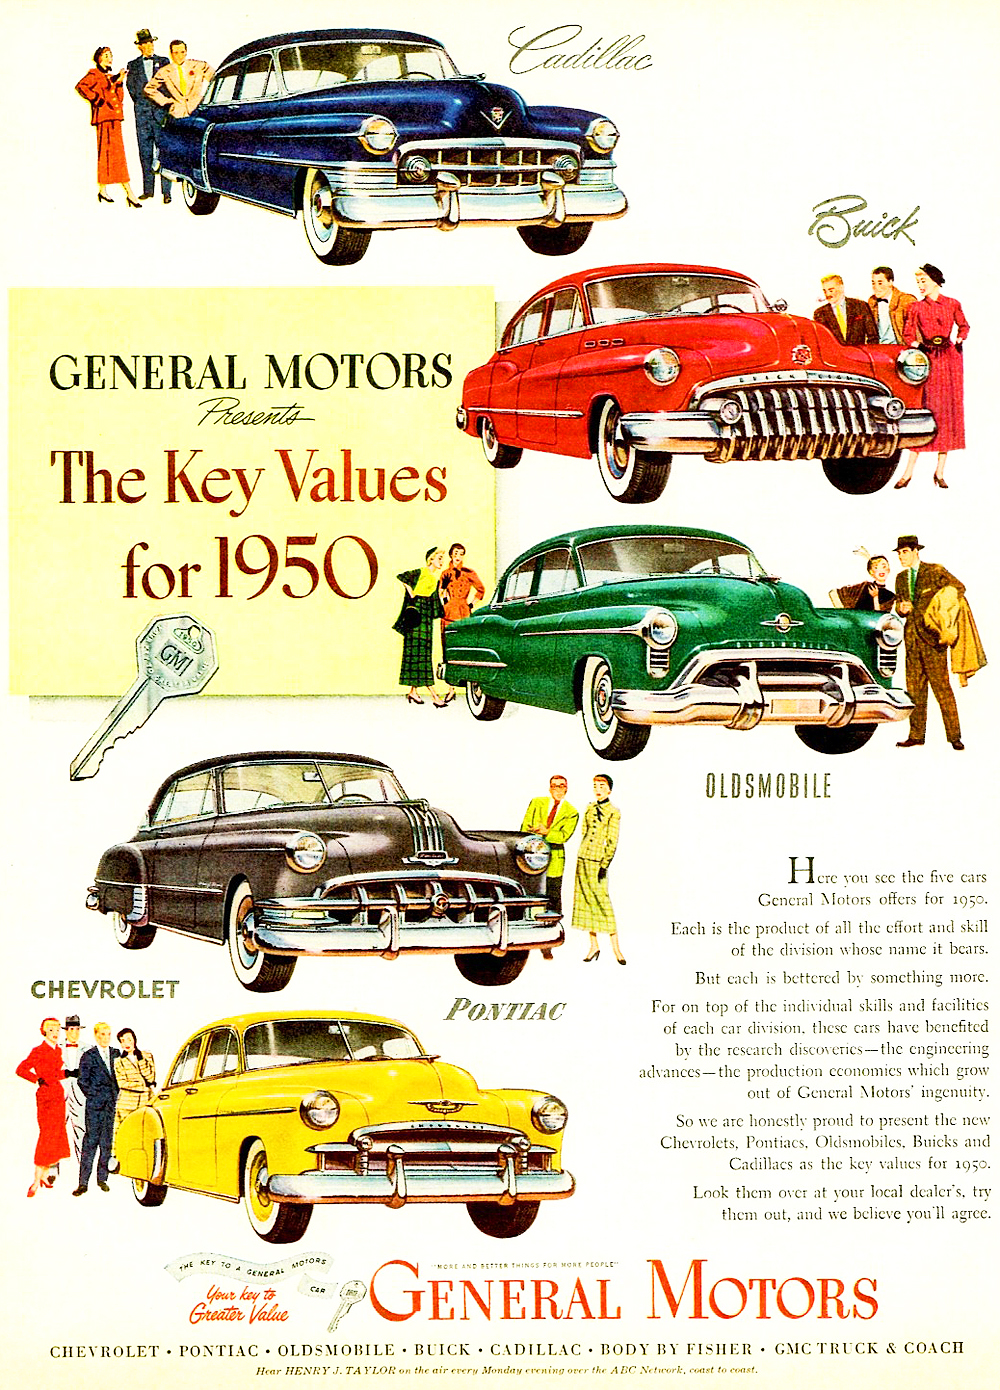 a history of general motors an american automobile industry Some key events in general motors' history:  a brief history of general motors corp  it's the largest annual loss in auto industry history.